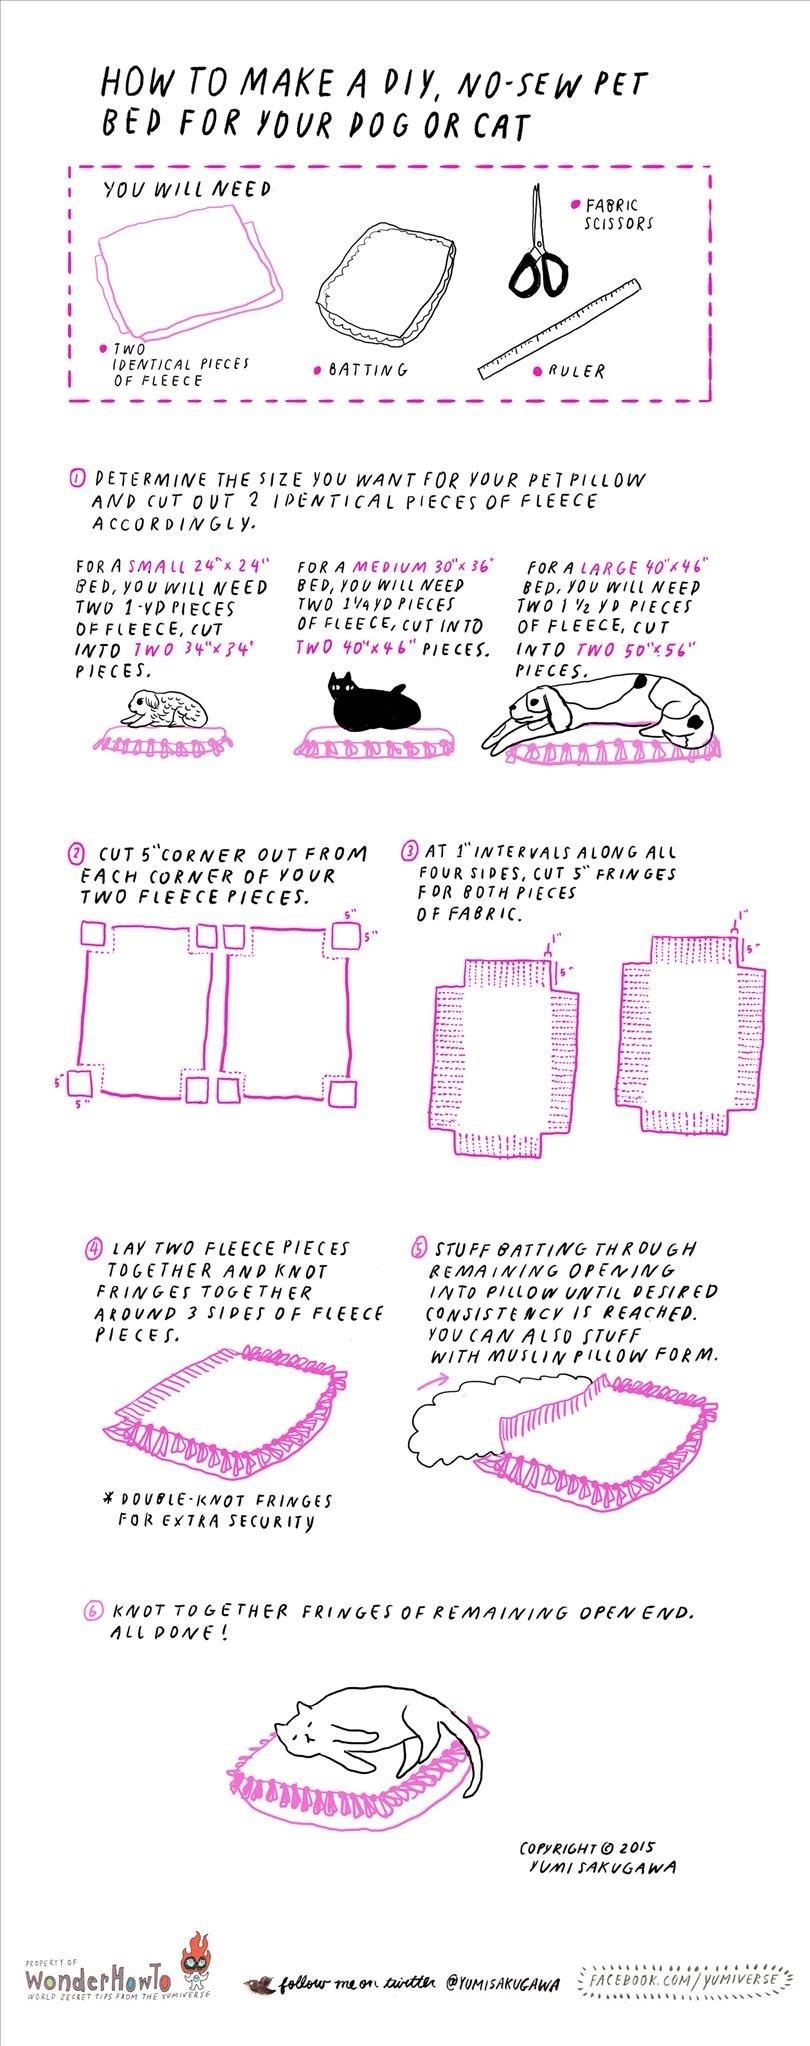 How to Make an Easy No-Sew Pet Bed for Your Cat or Dog